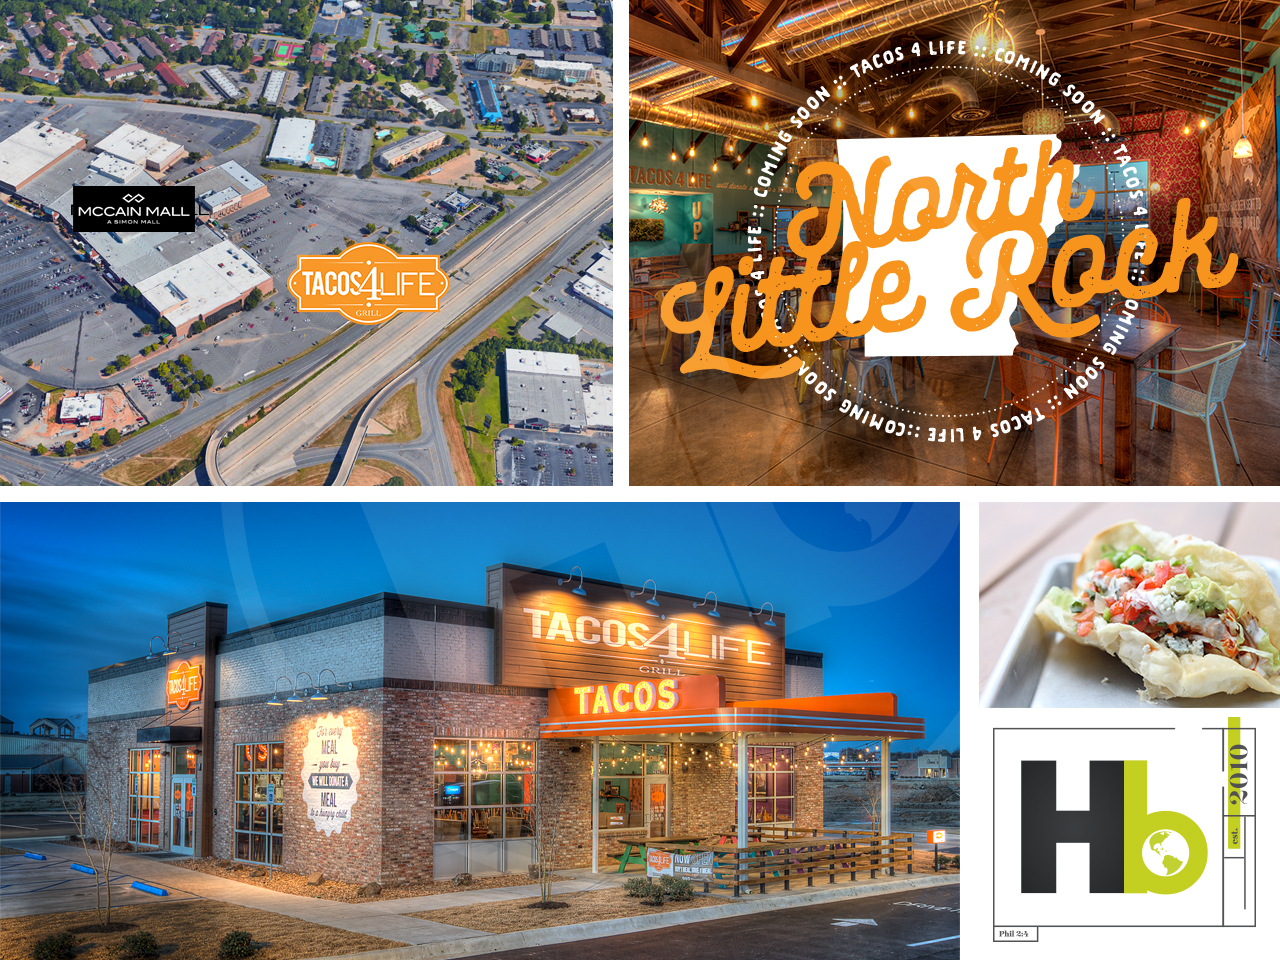 Tacos 4 Life Coming to North Little Rock, AR